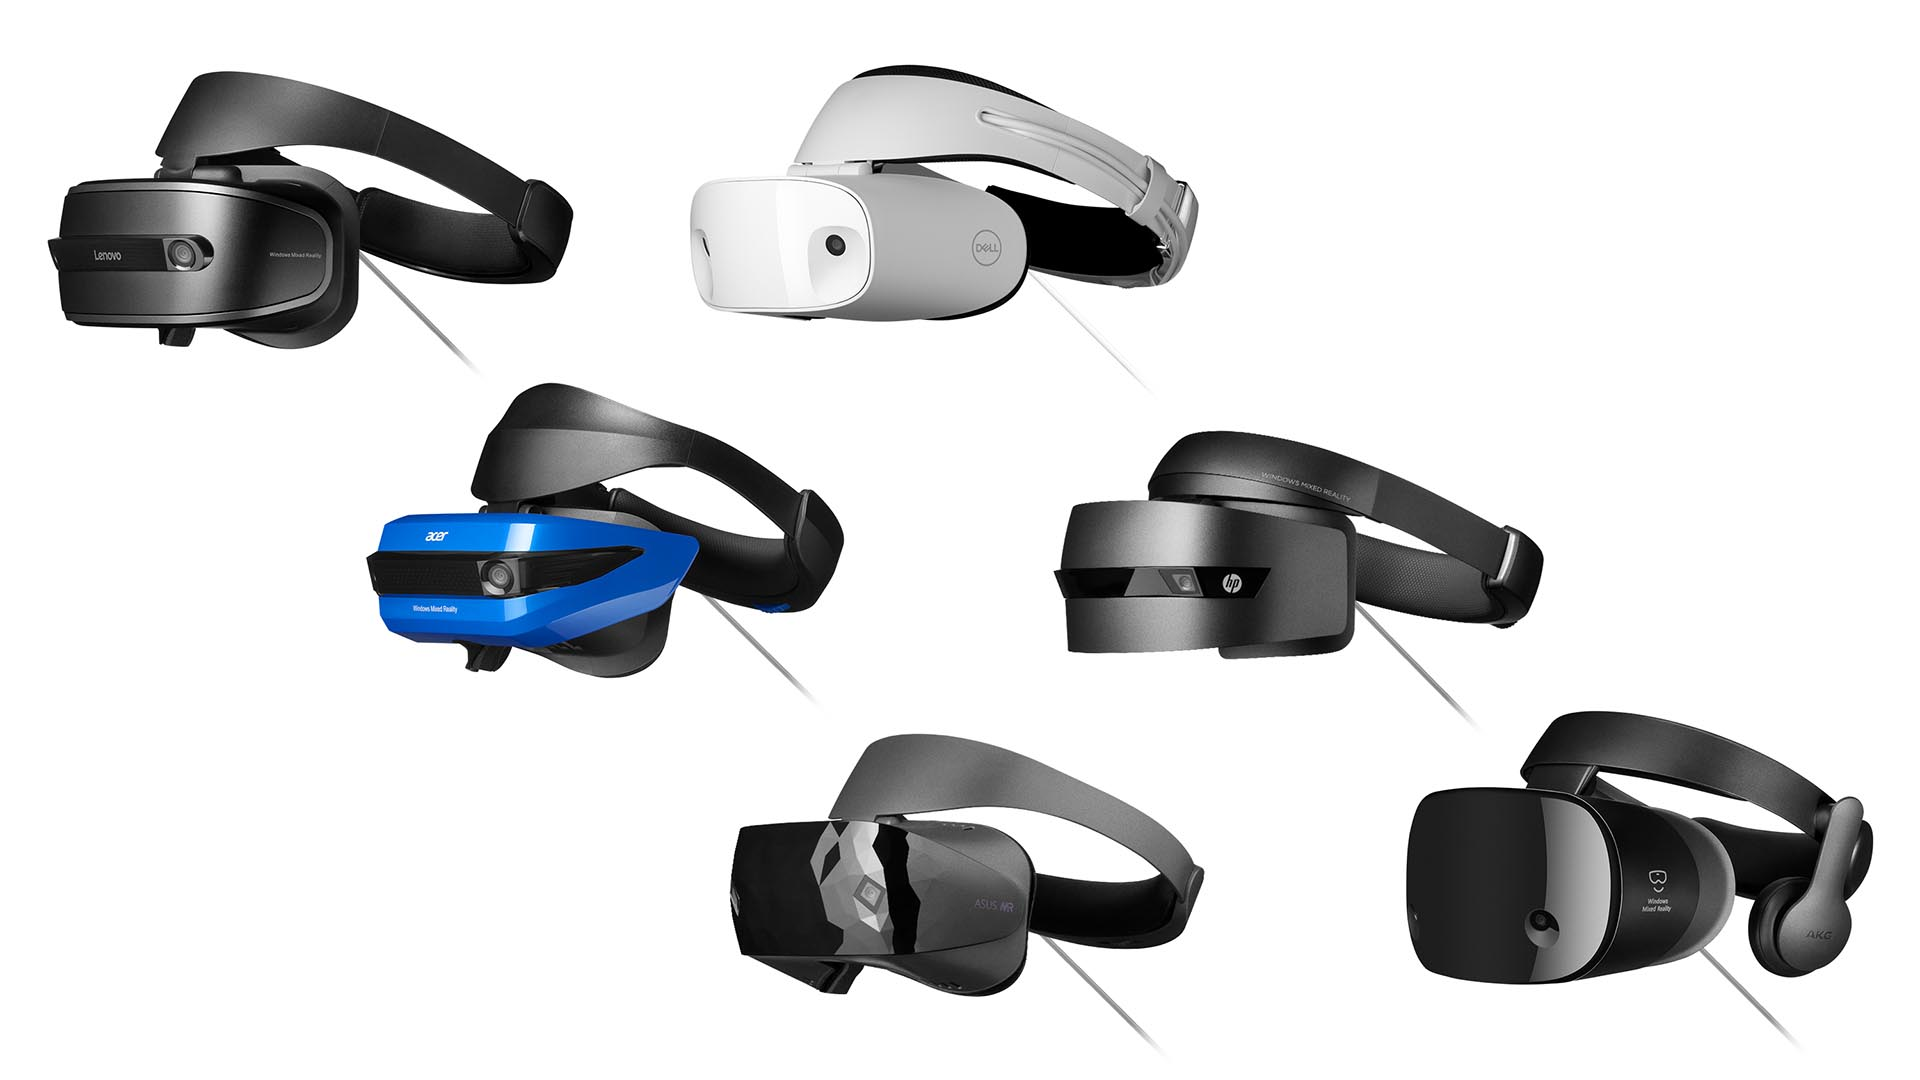 Microsoft could be moving in to kill Windows Mixed Reality